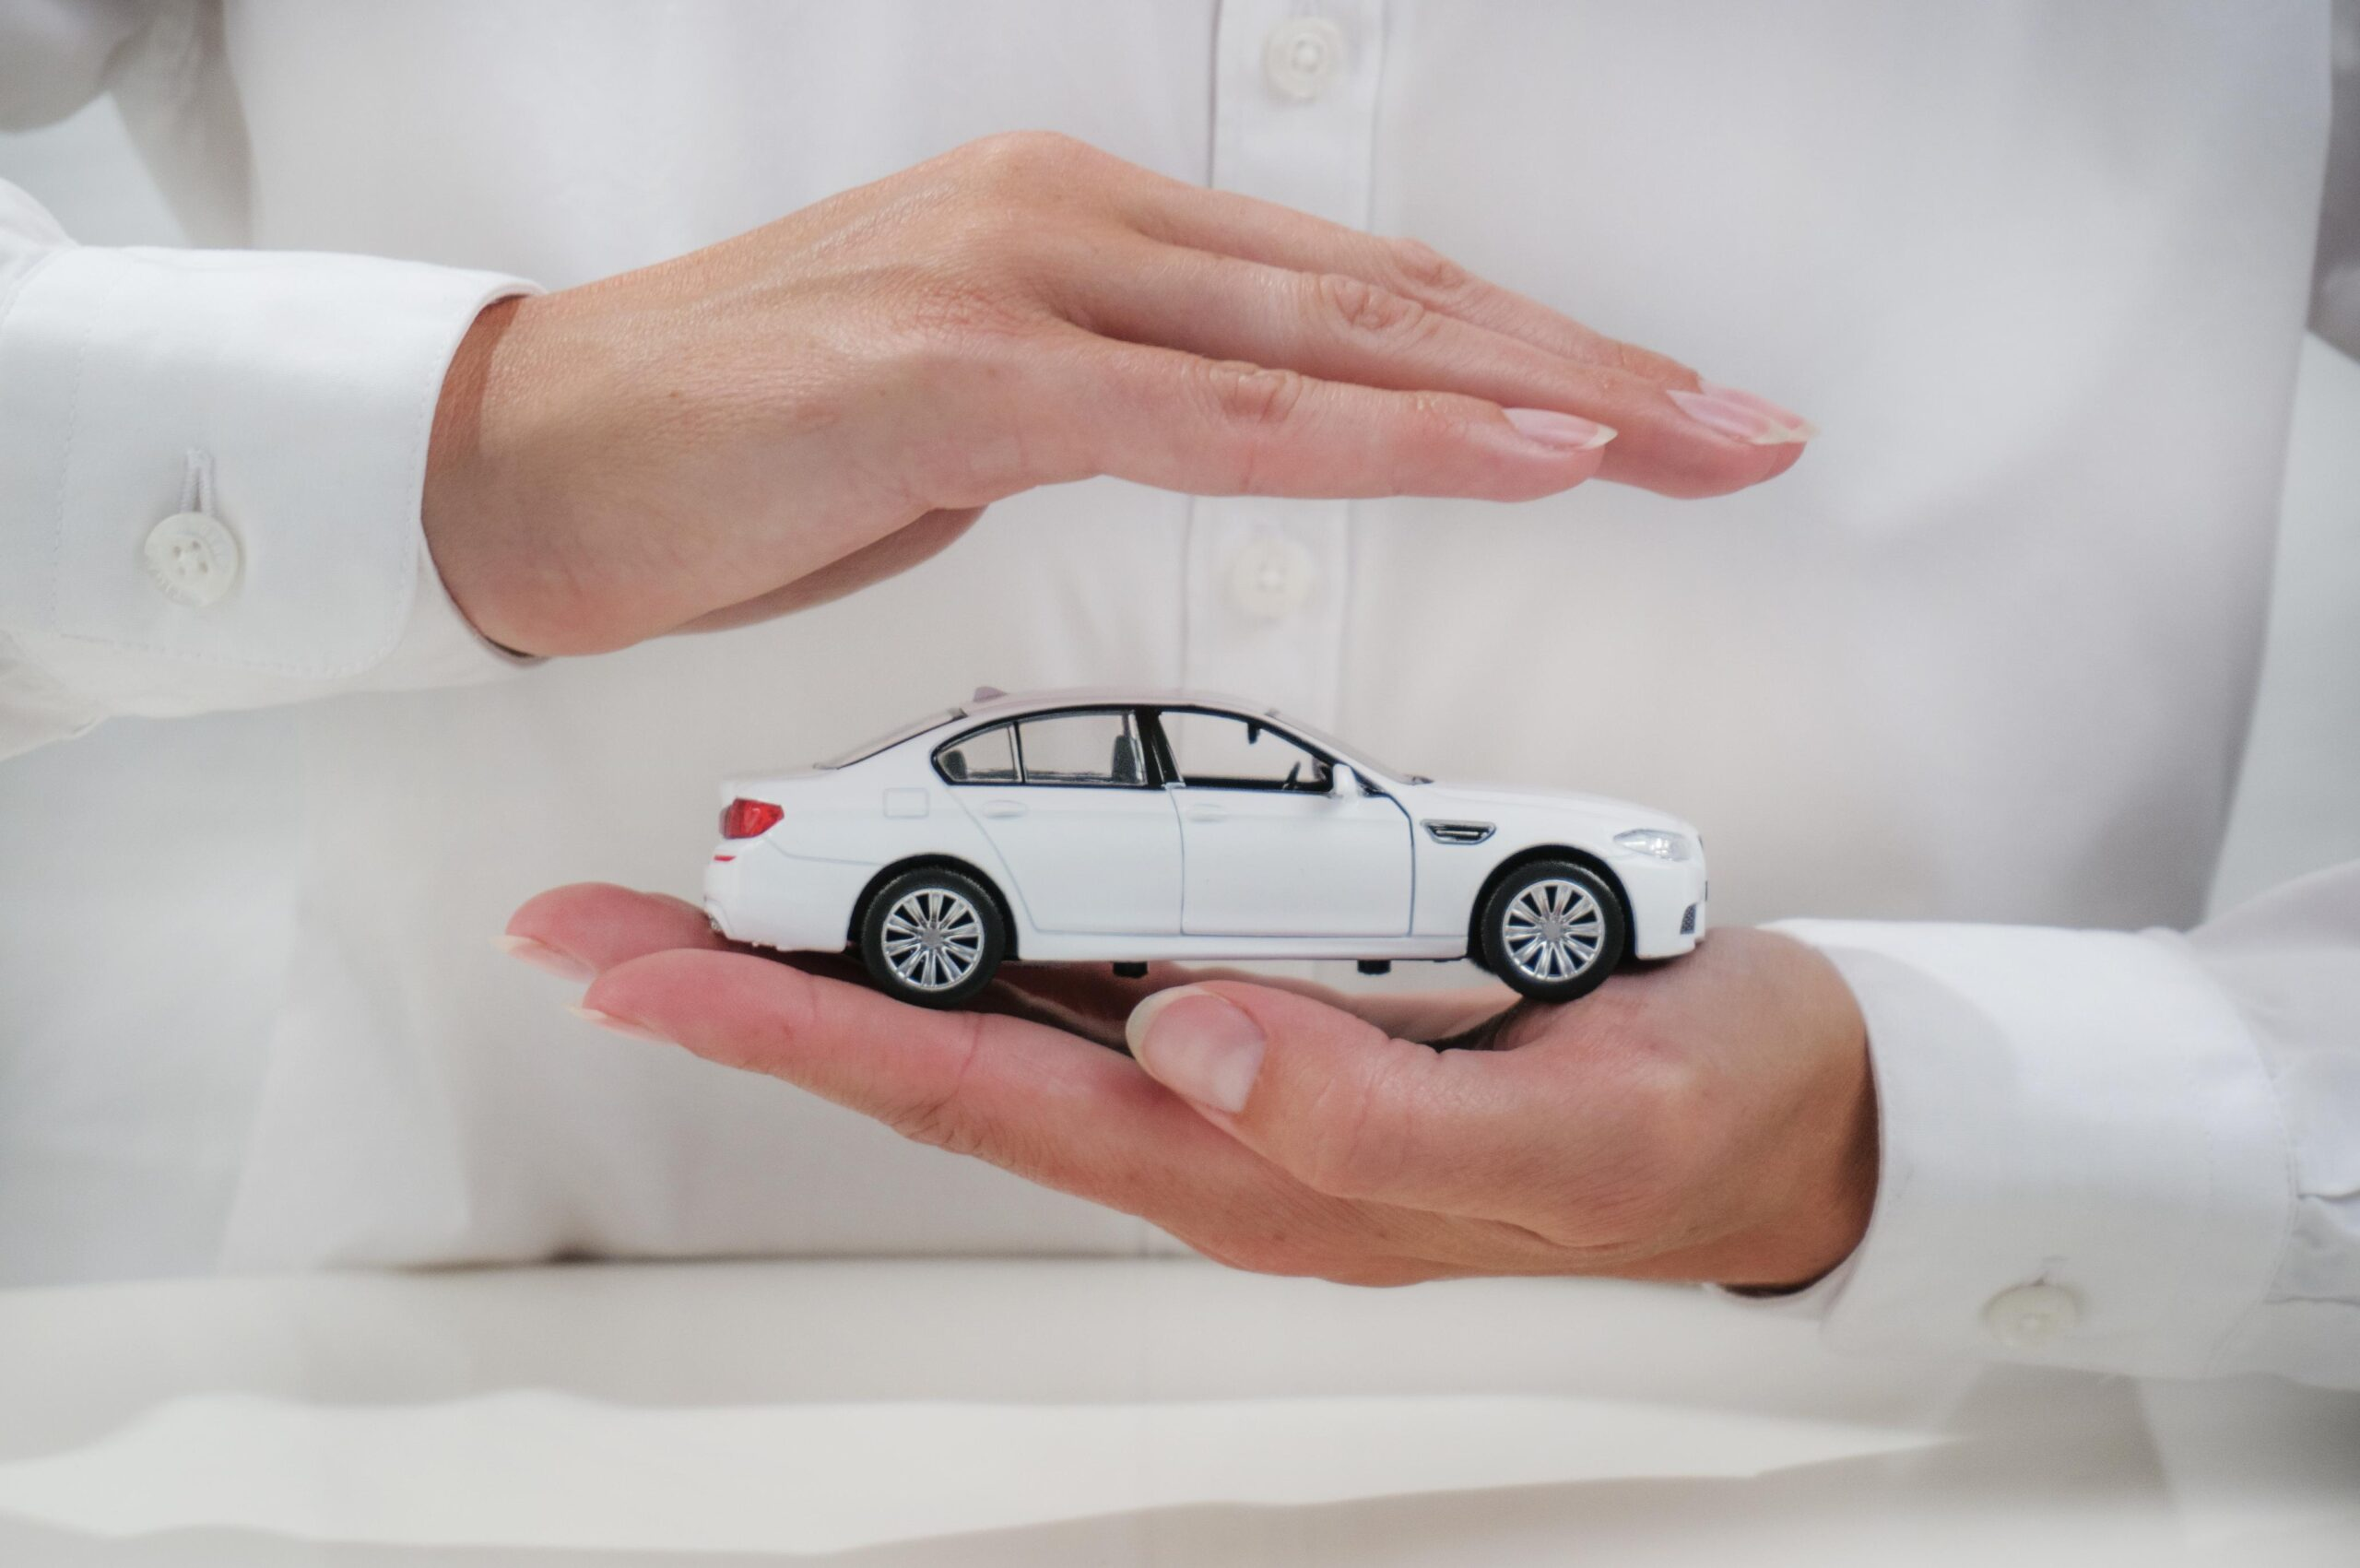 Lowering Premiums for Cars with Advanced Safety Features